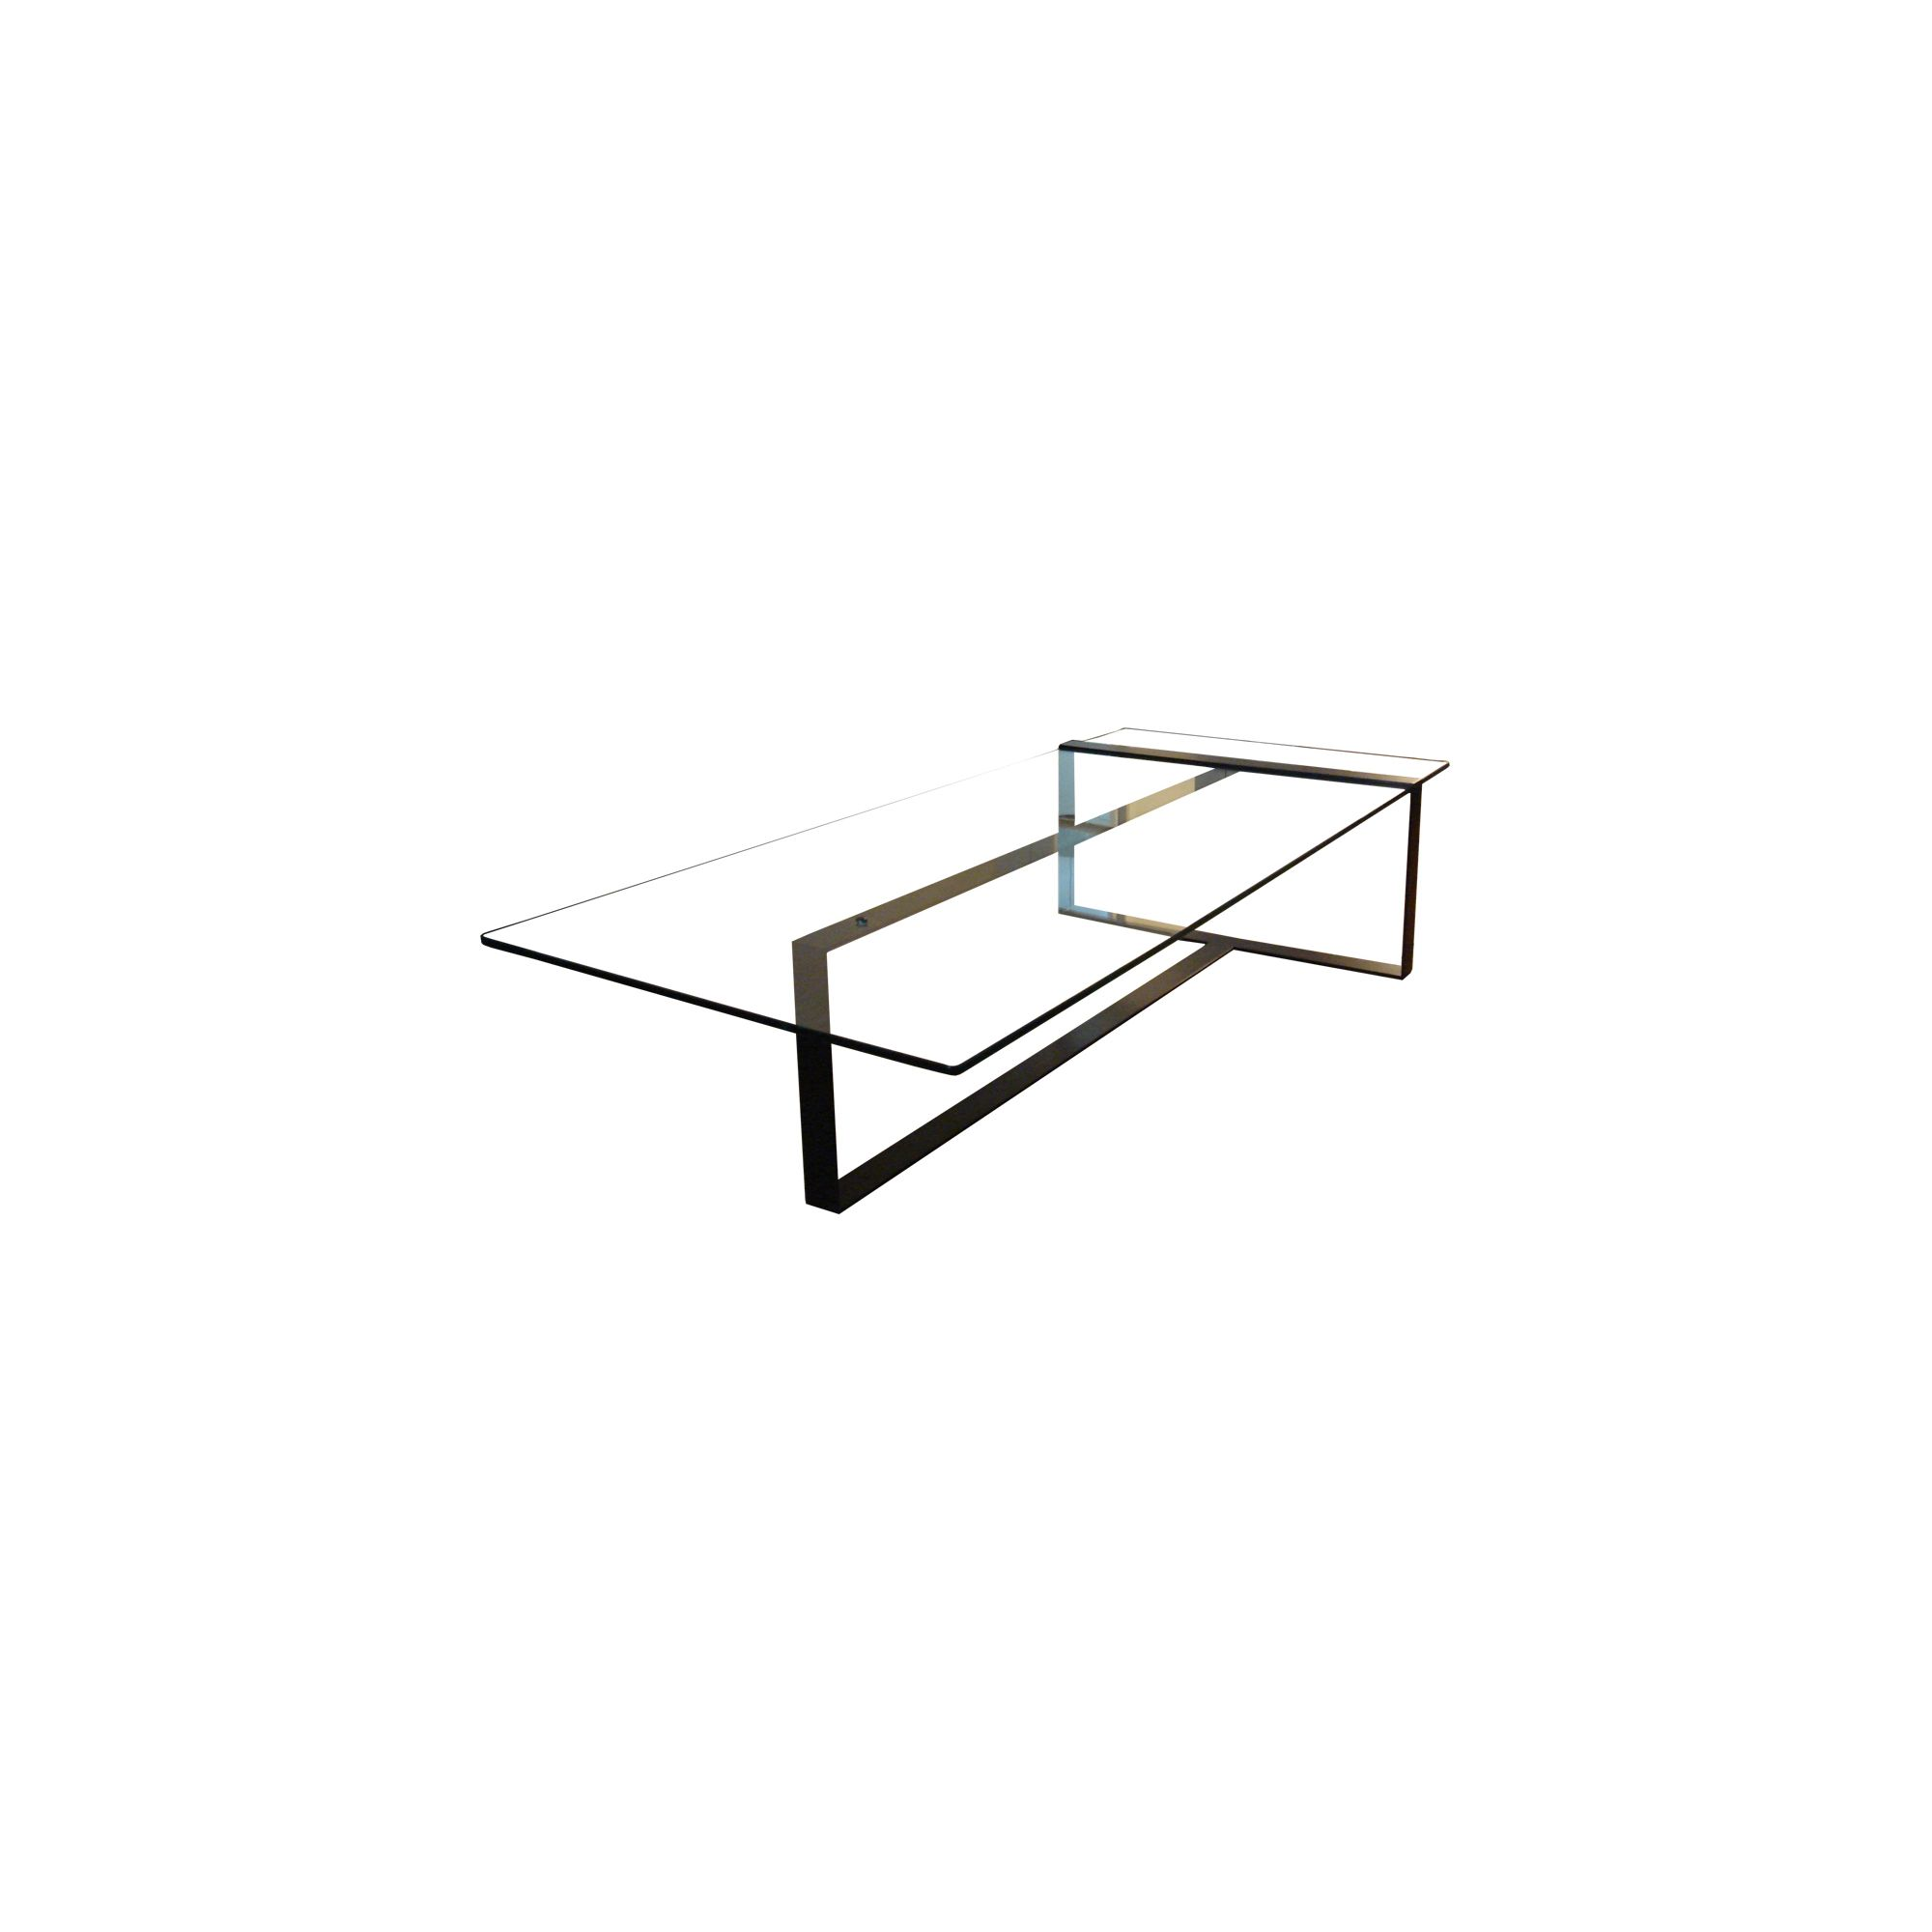 Alex de Rouvray Severin Glass Top Coffee Table at Tesco Direct